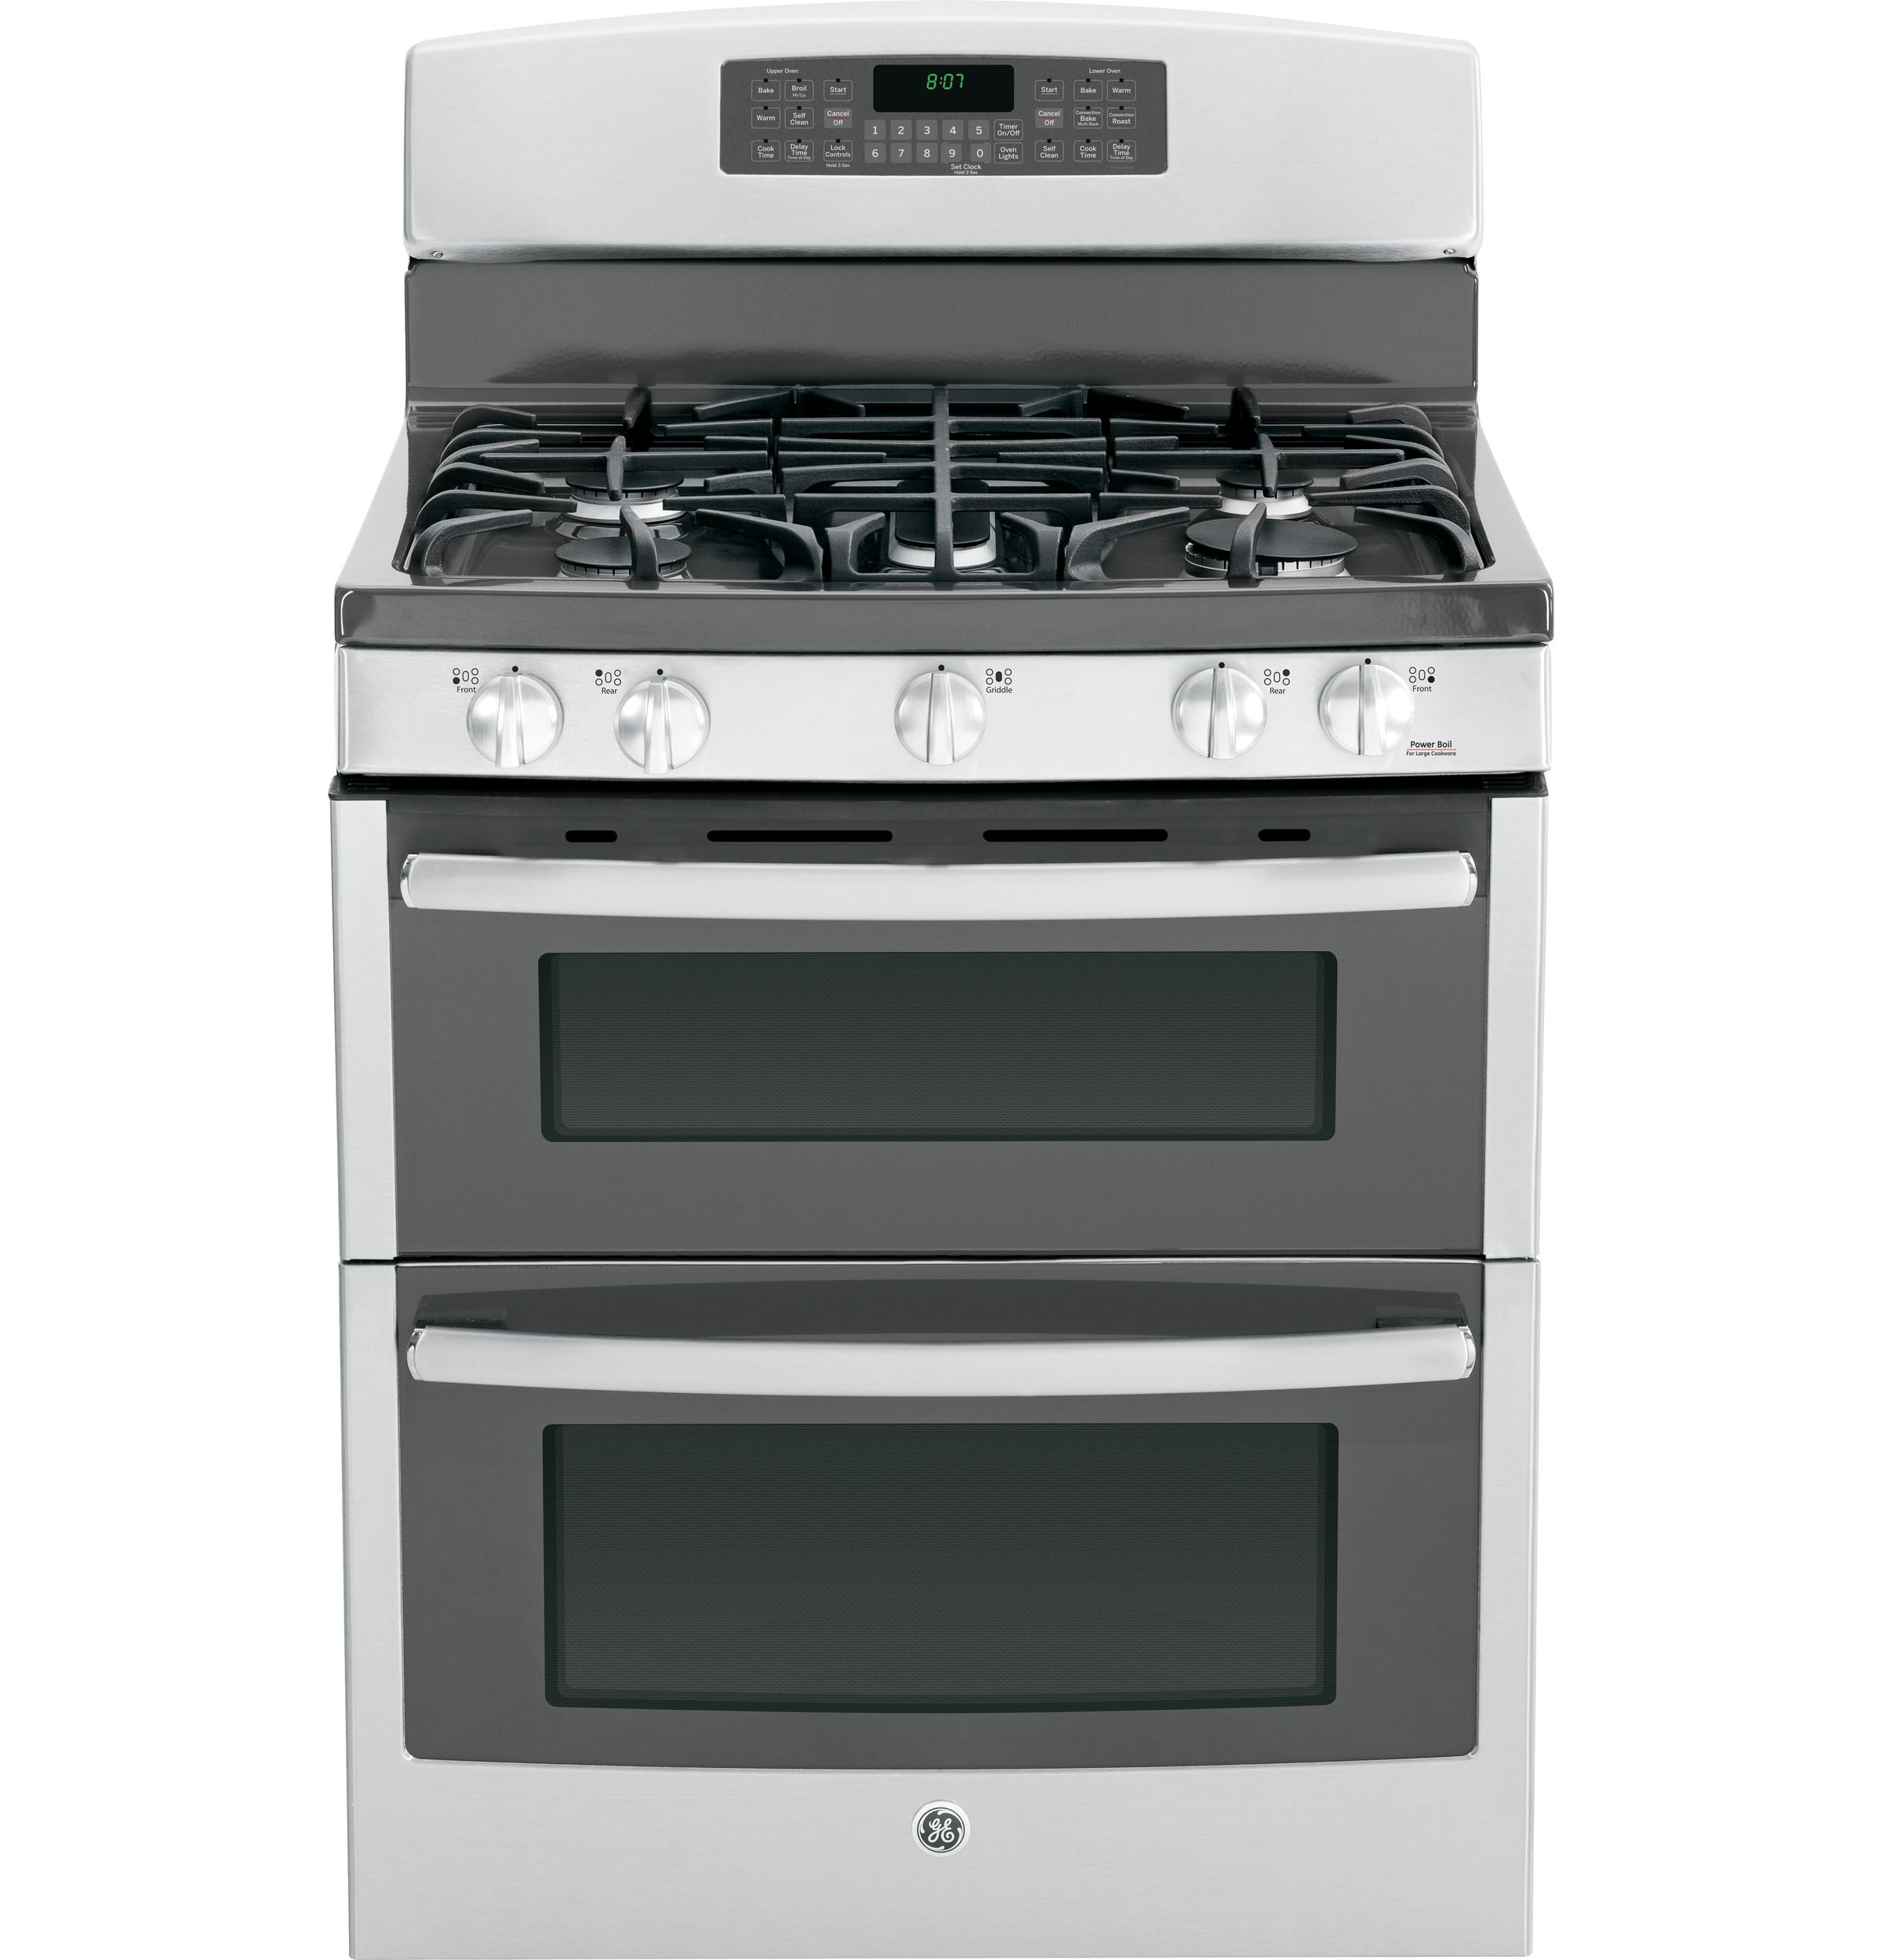 View the GE PGS950SEFSS Profile Series